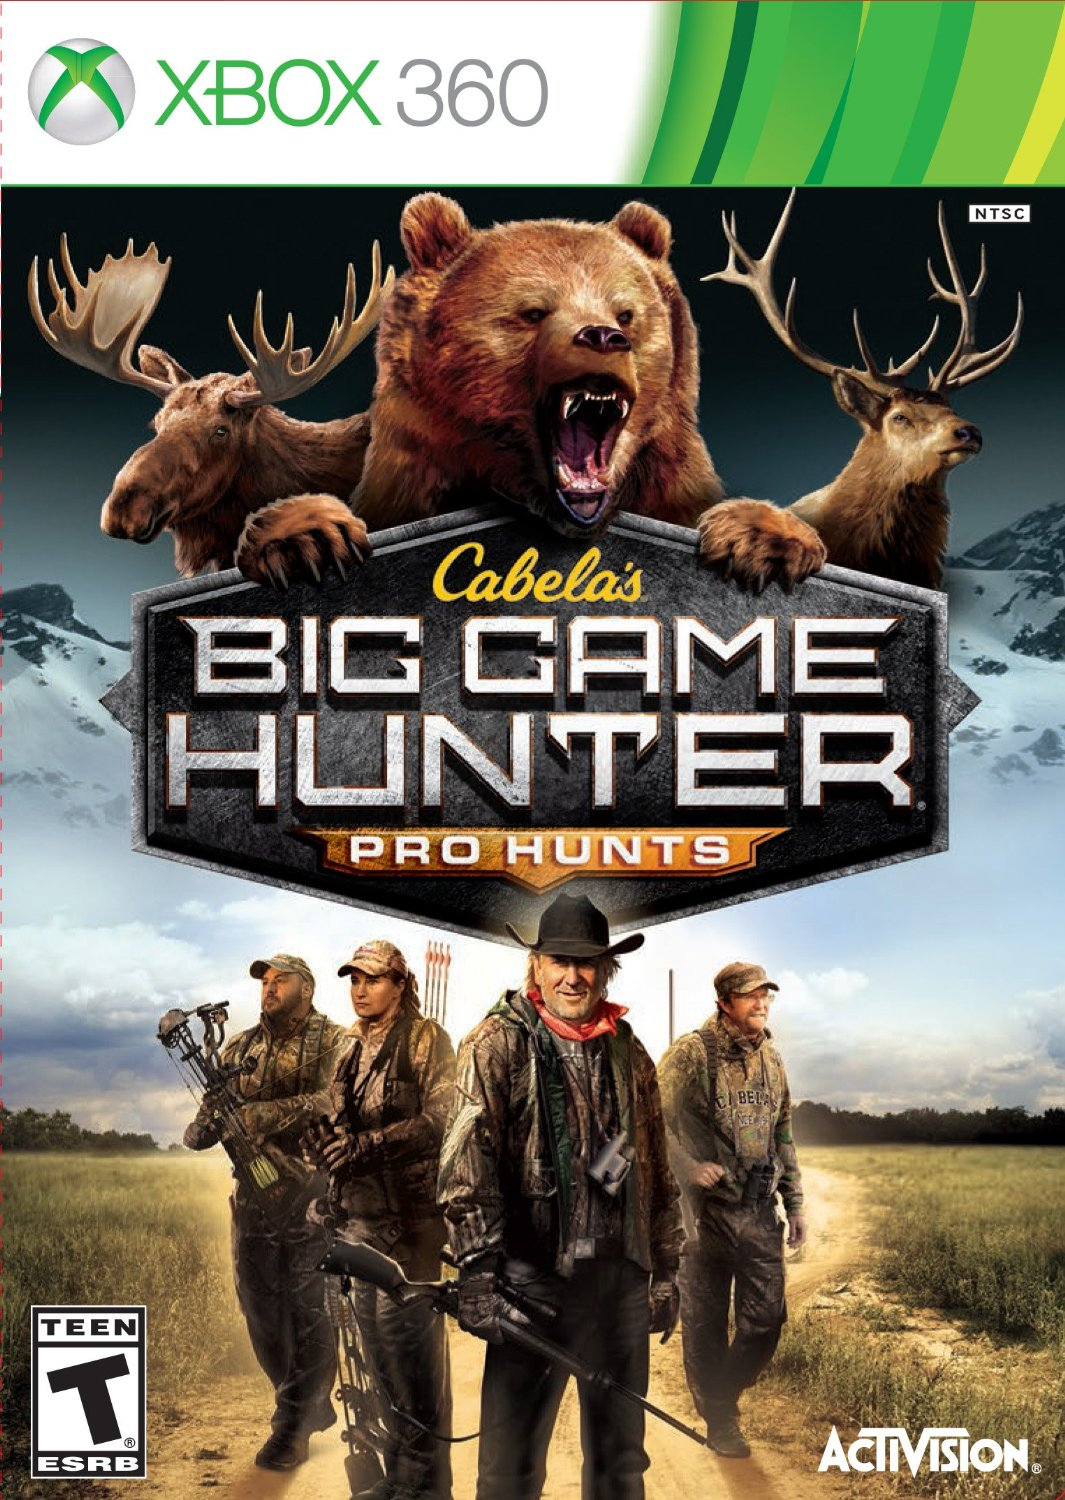 Cabelas Big Game Hunter Pro Hunts xbox360 cover small ??????